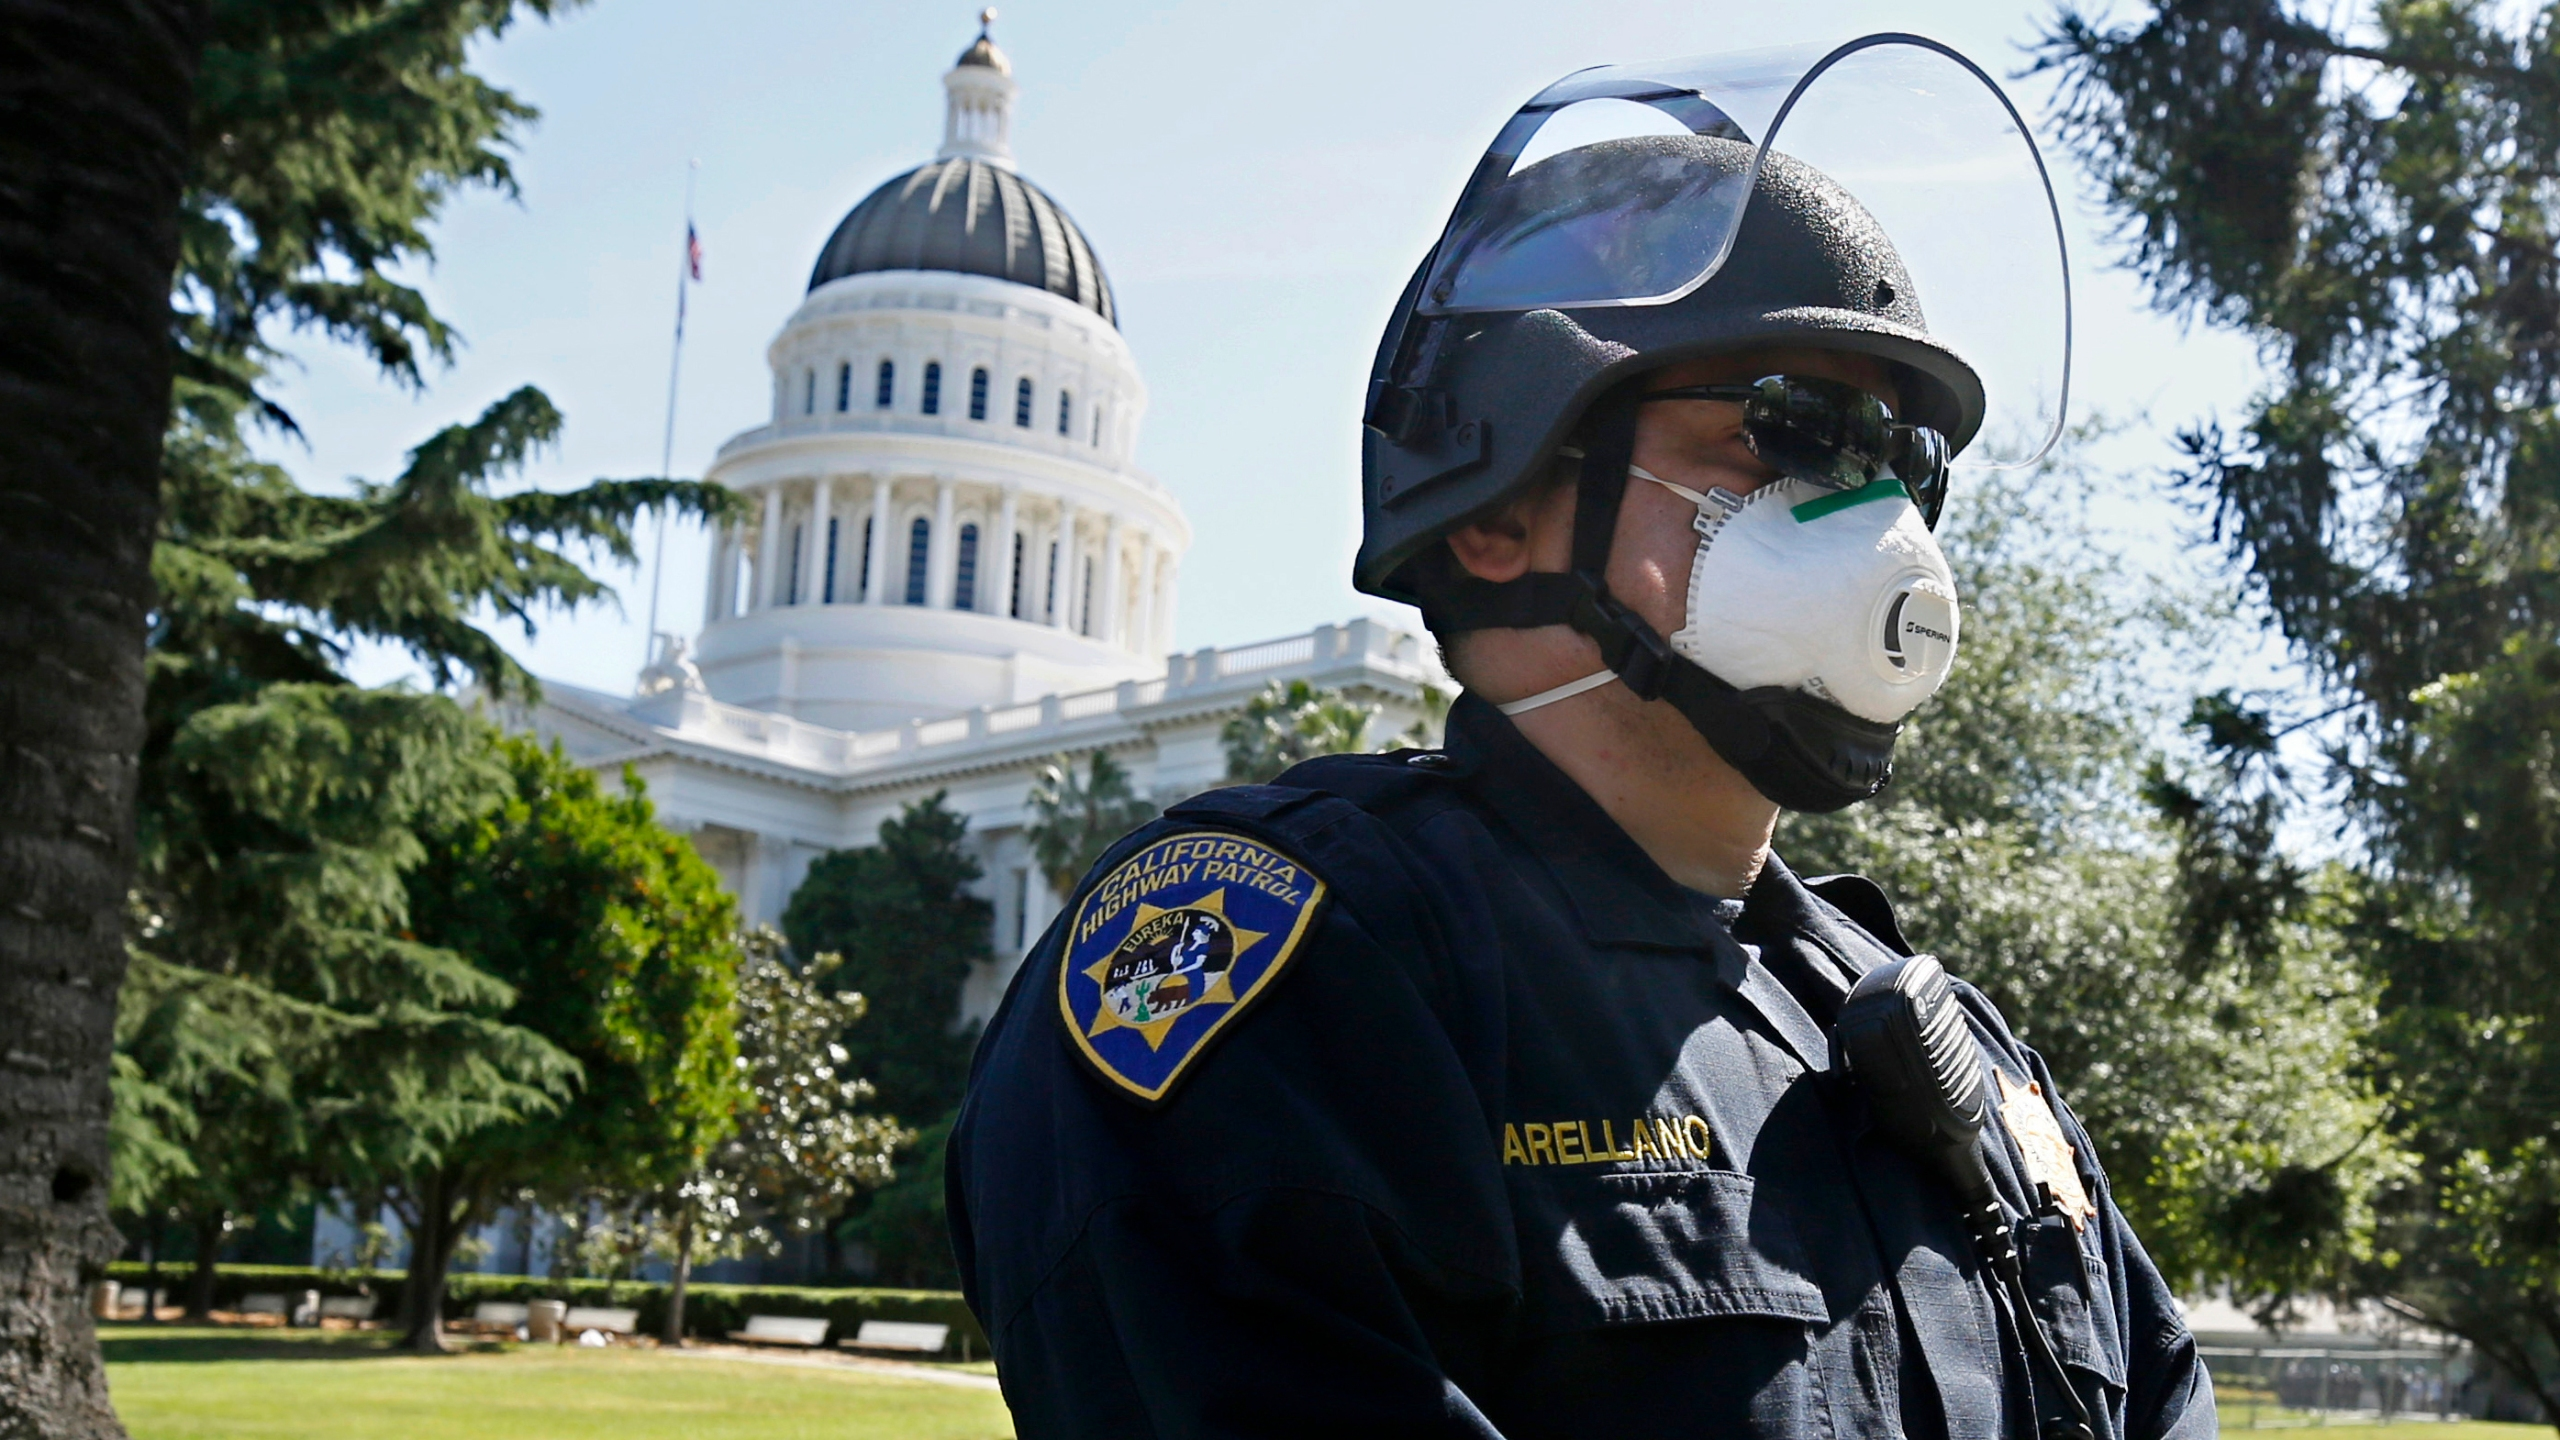 California Highway Patrol Officer S. Arellano wears a face mask as he and other officers form a line in anticipation of a protest at the the state Capitol in Sacramento on May 7, 2020. (Rich Pedroncelli / Associated Press)